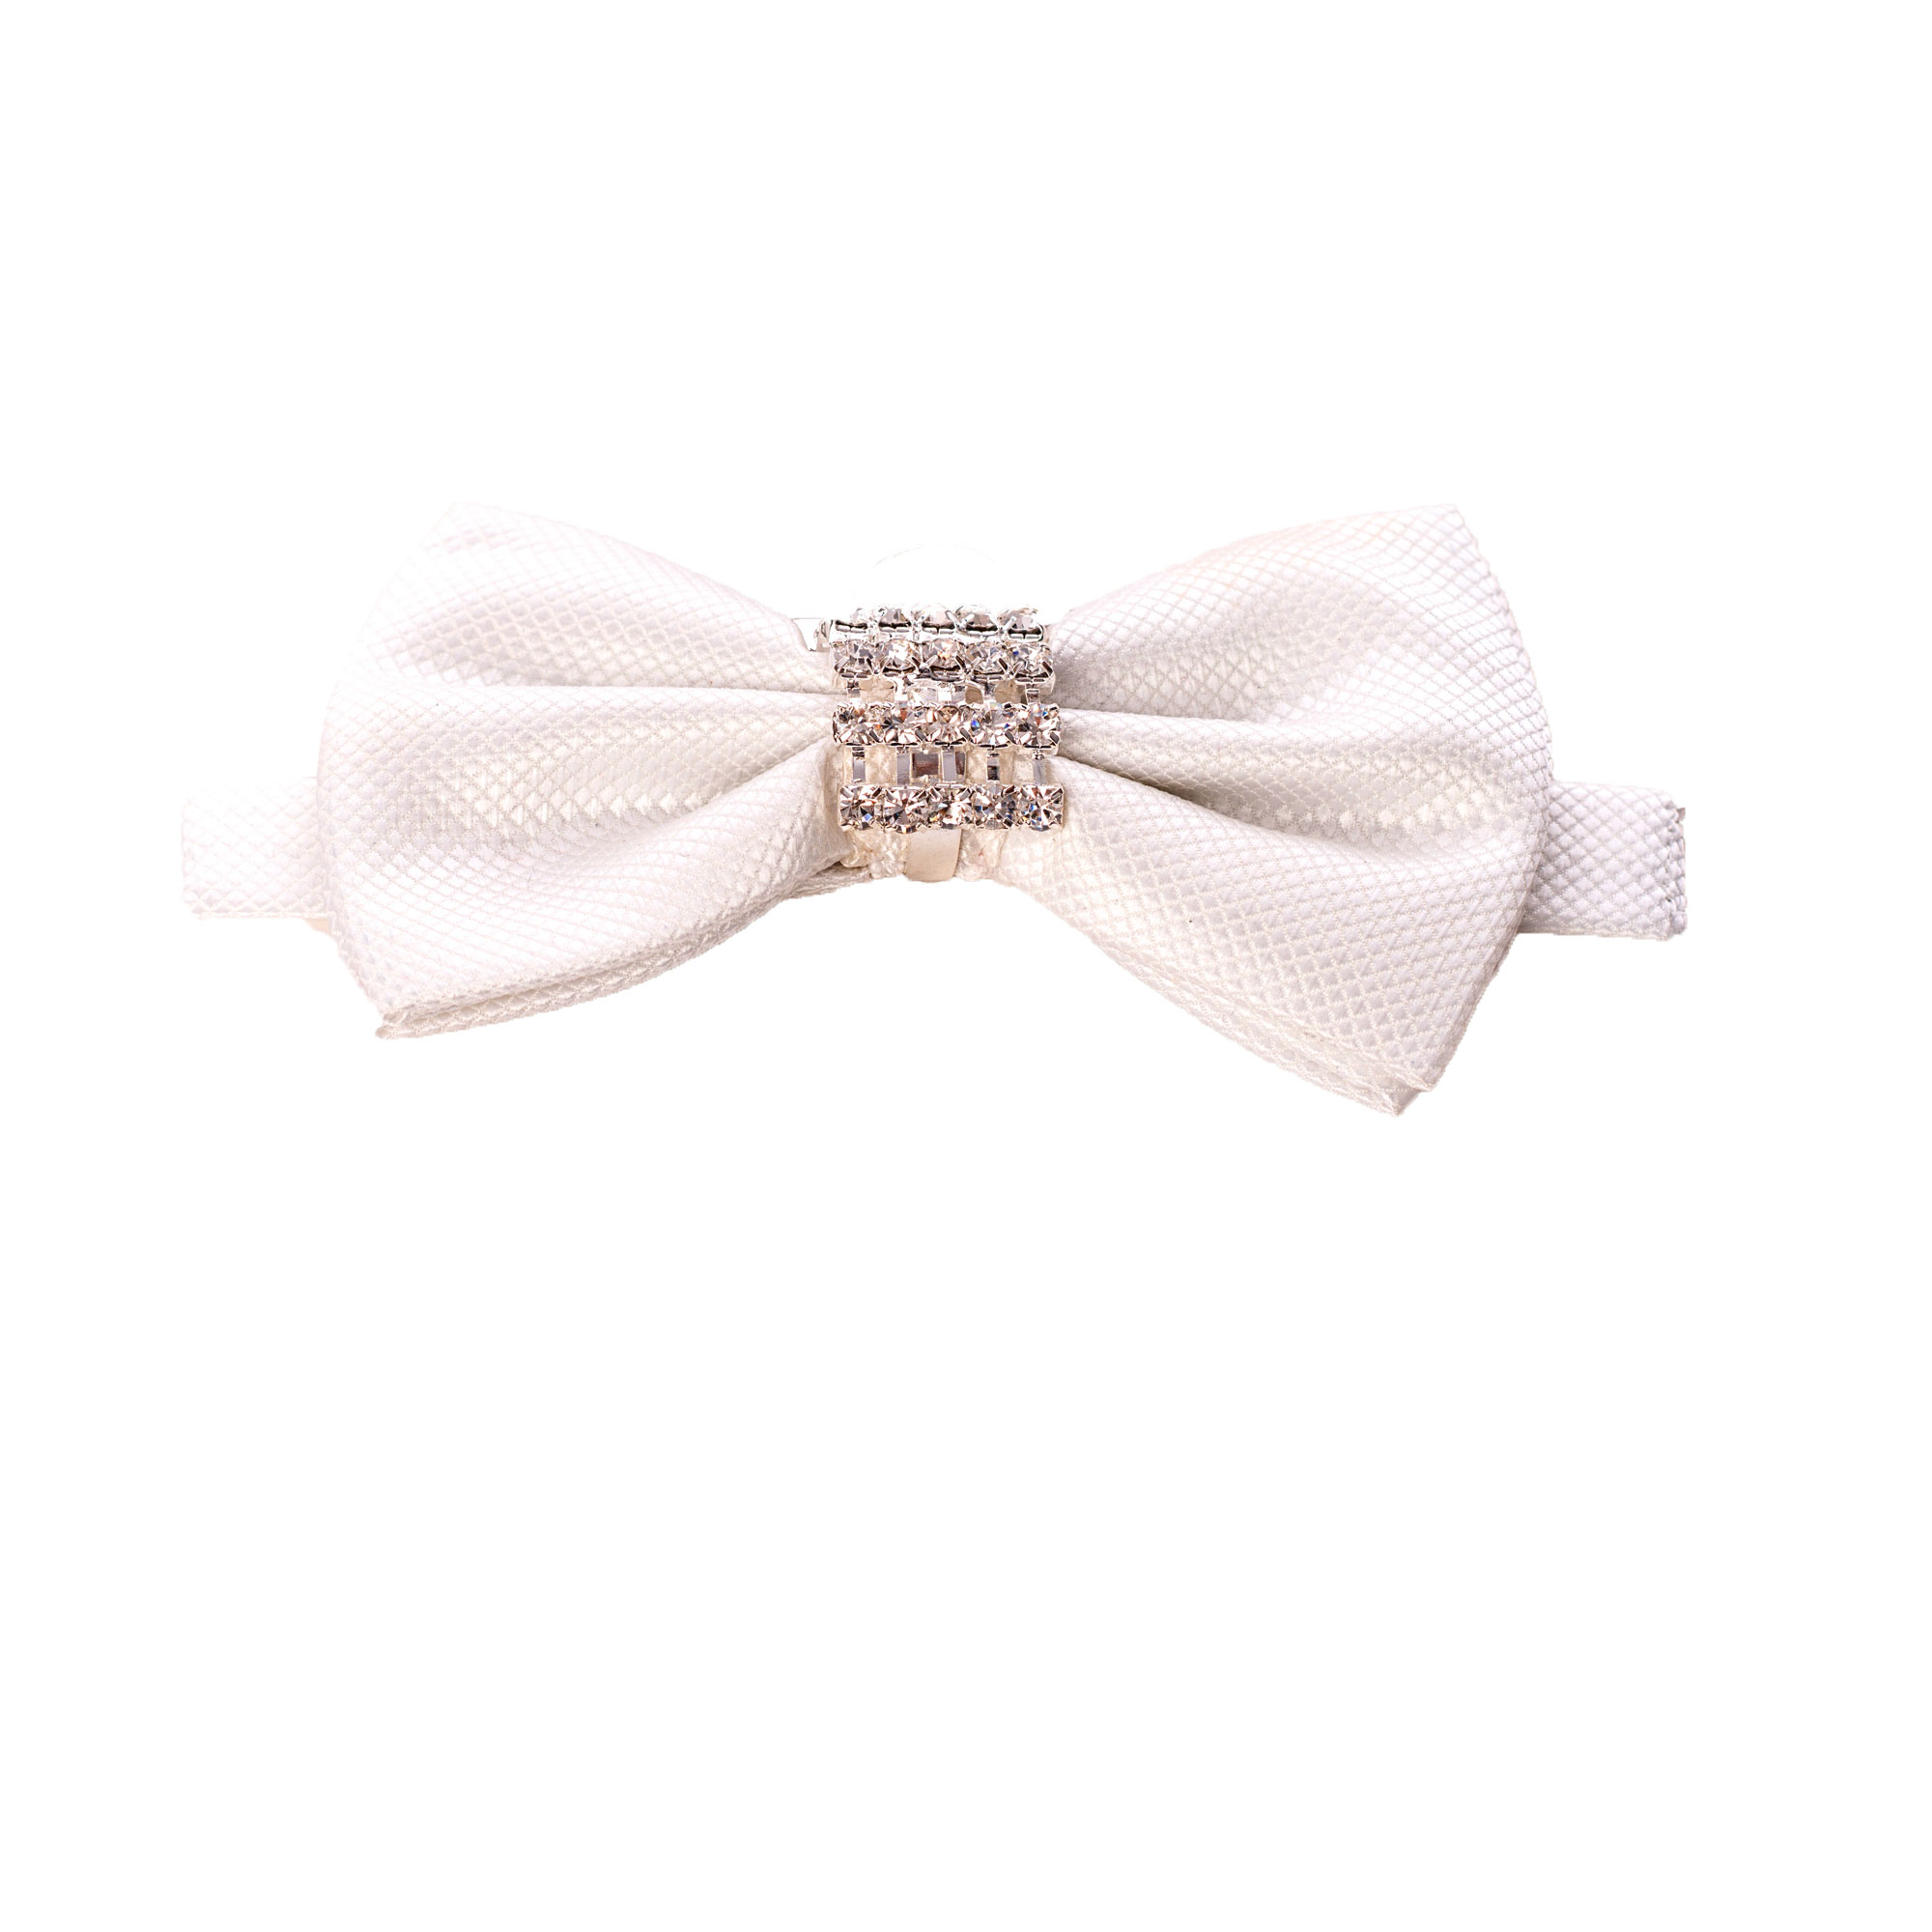 Crystalized Solid Men's Bowties EBBT20-1B